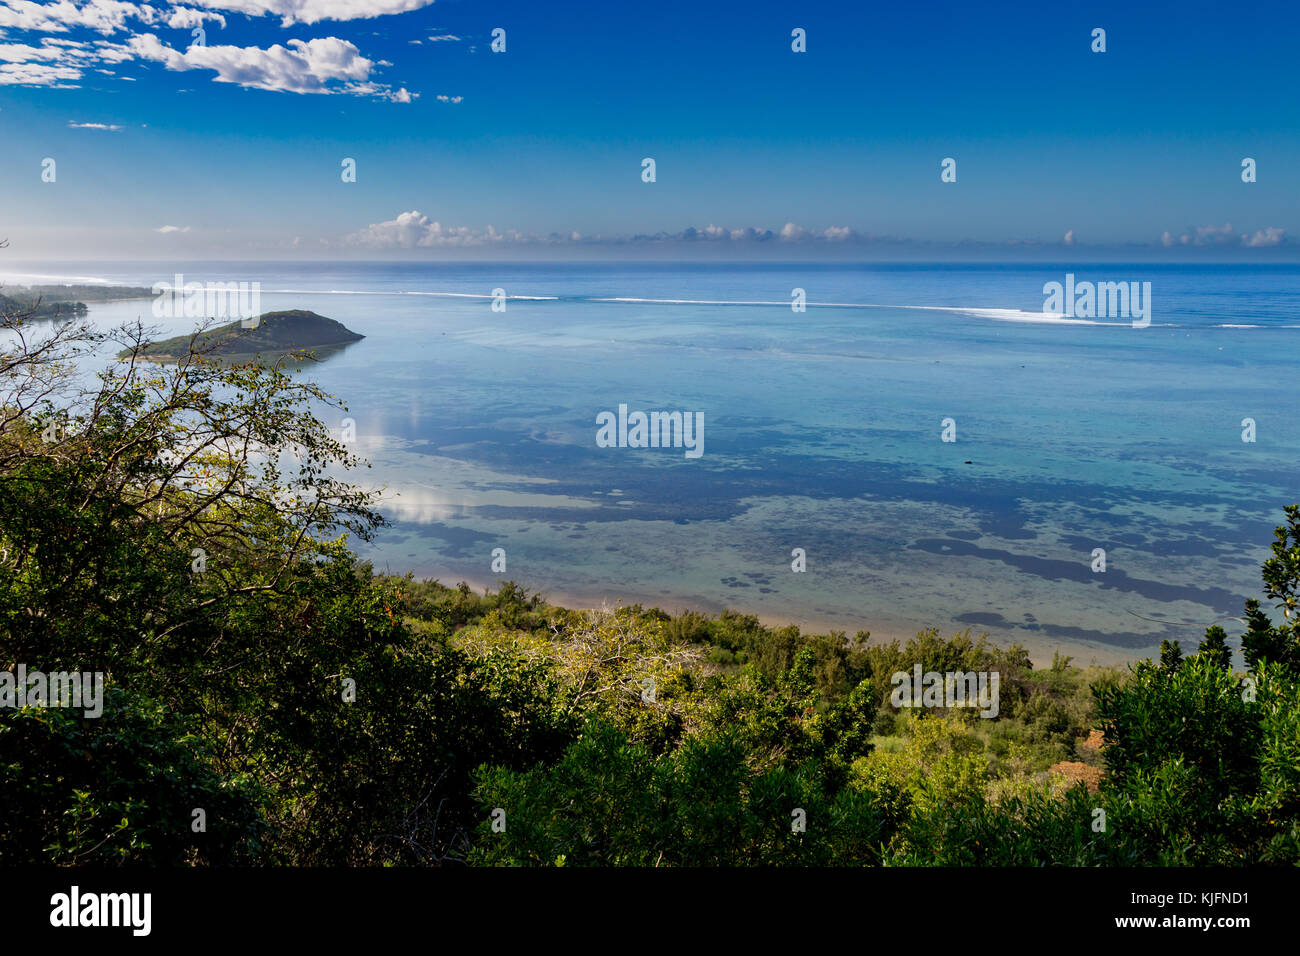 View from Le Morne Brabant onto the turquoise waters of the lagoon at the south coast of Mauritius, Africa. - Stock Image